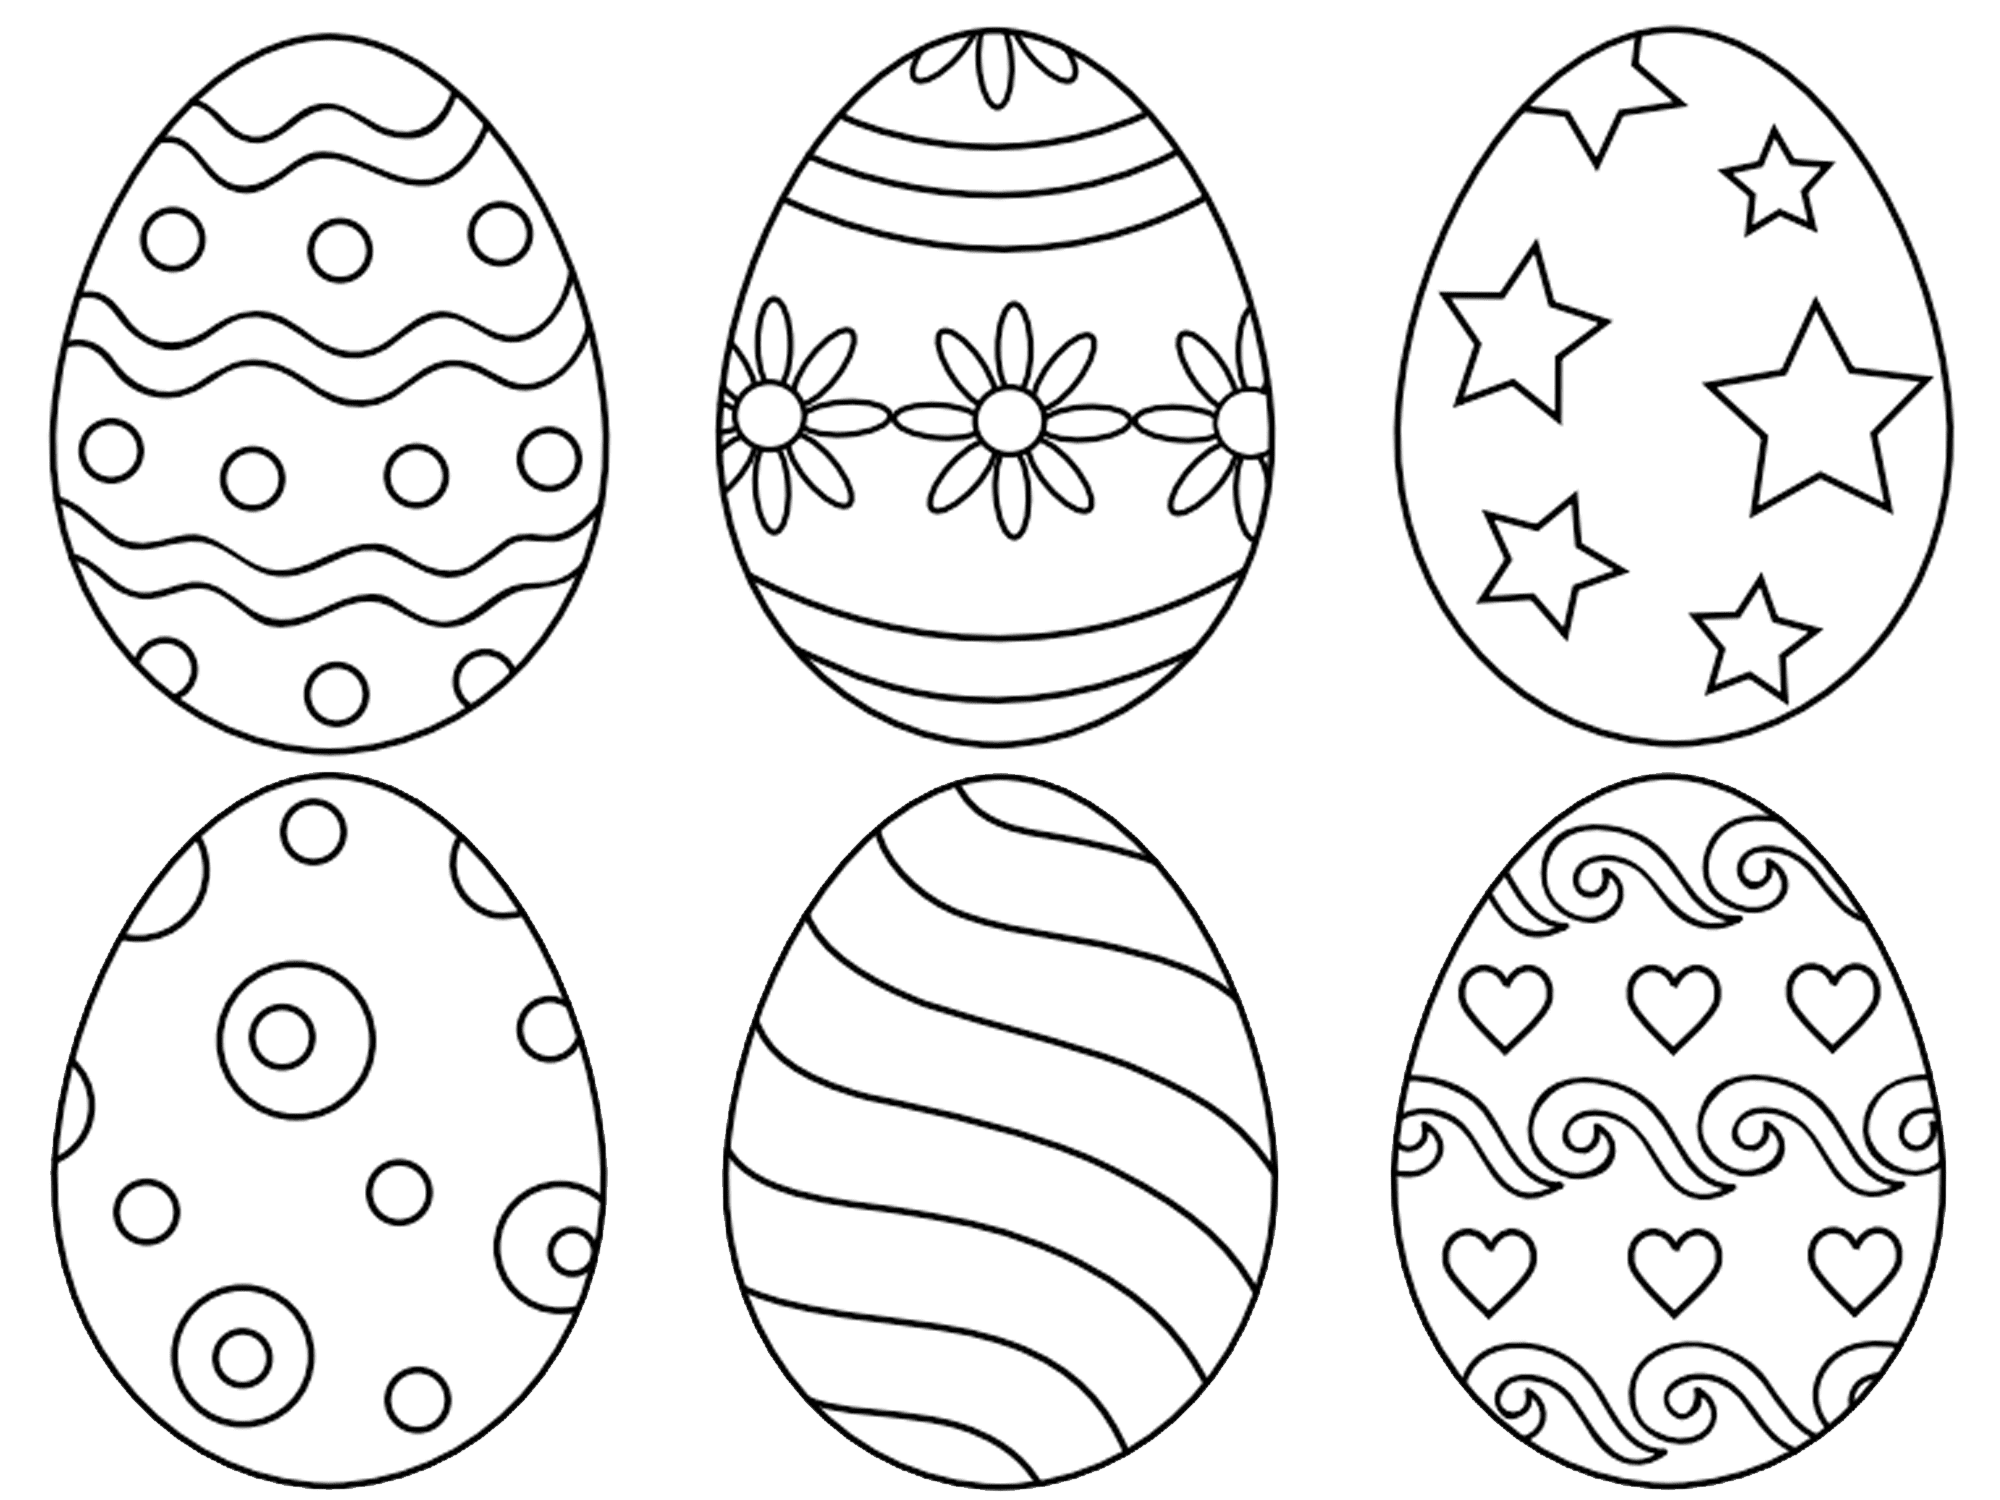 egg coloring sheet printable easter egg coloring pages for kids cool2bkids egg coloring sheet